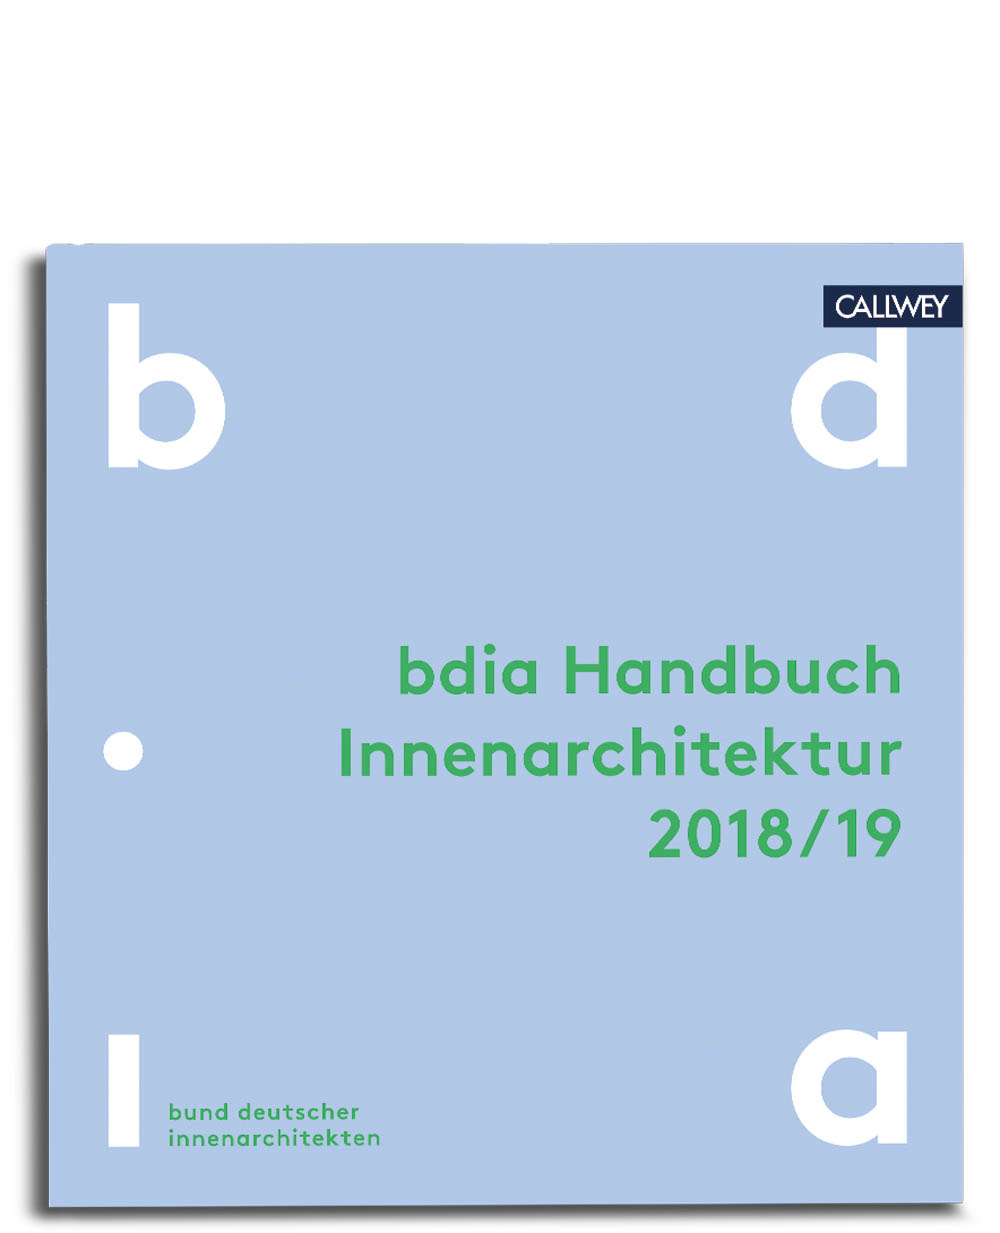 Bdia handbuch innenarchitektur 2018 19 callwey for Innenarchitektur jobs